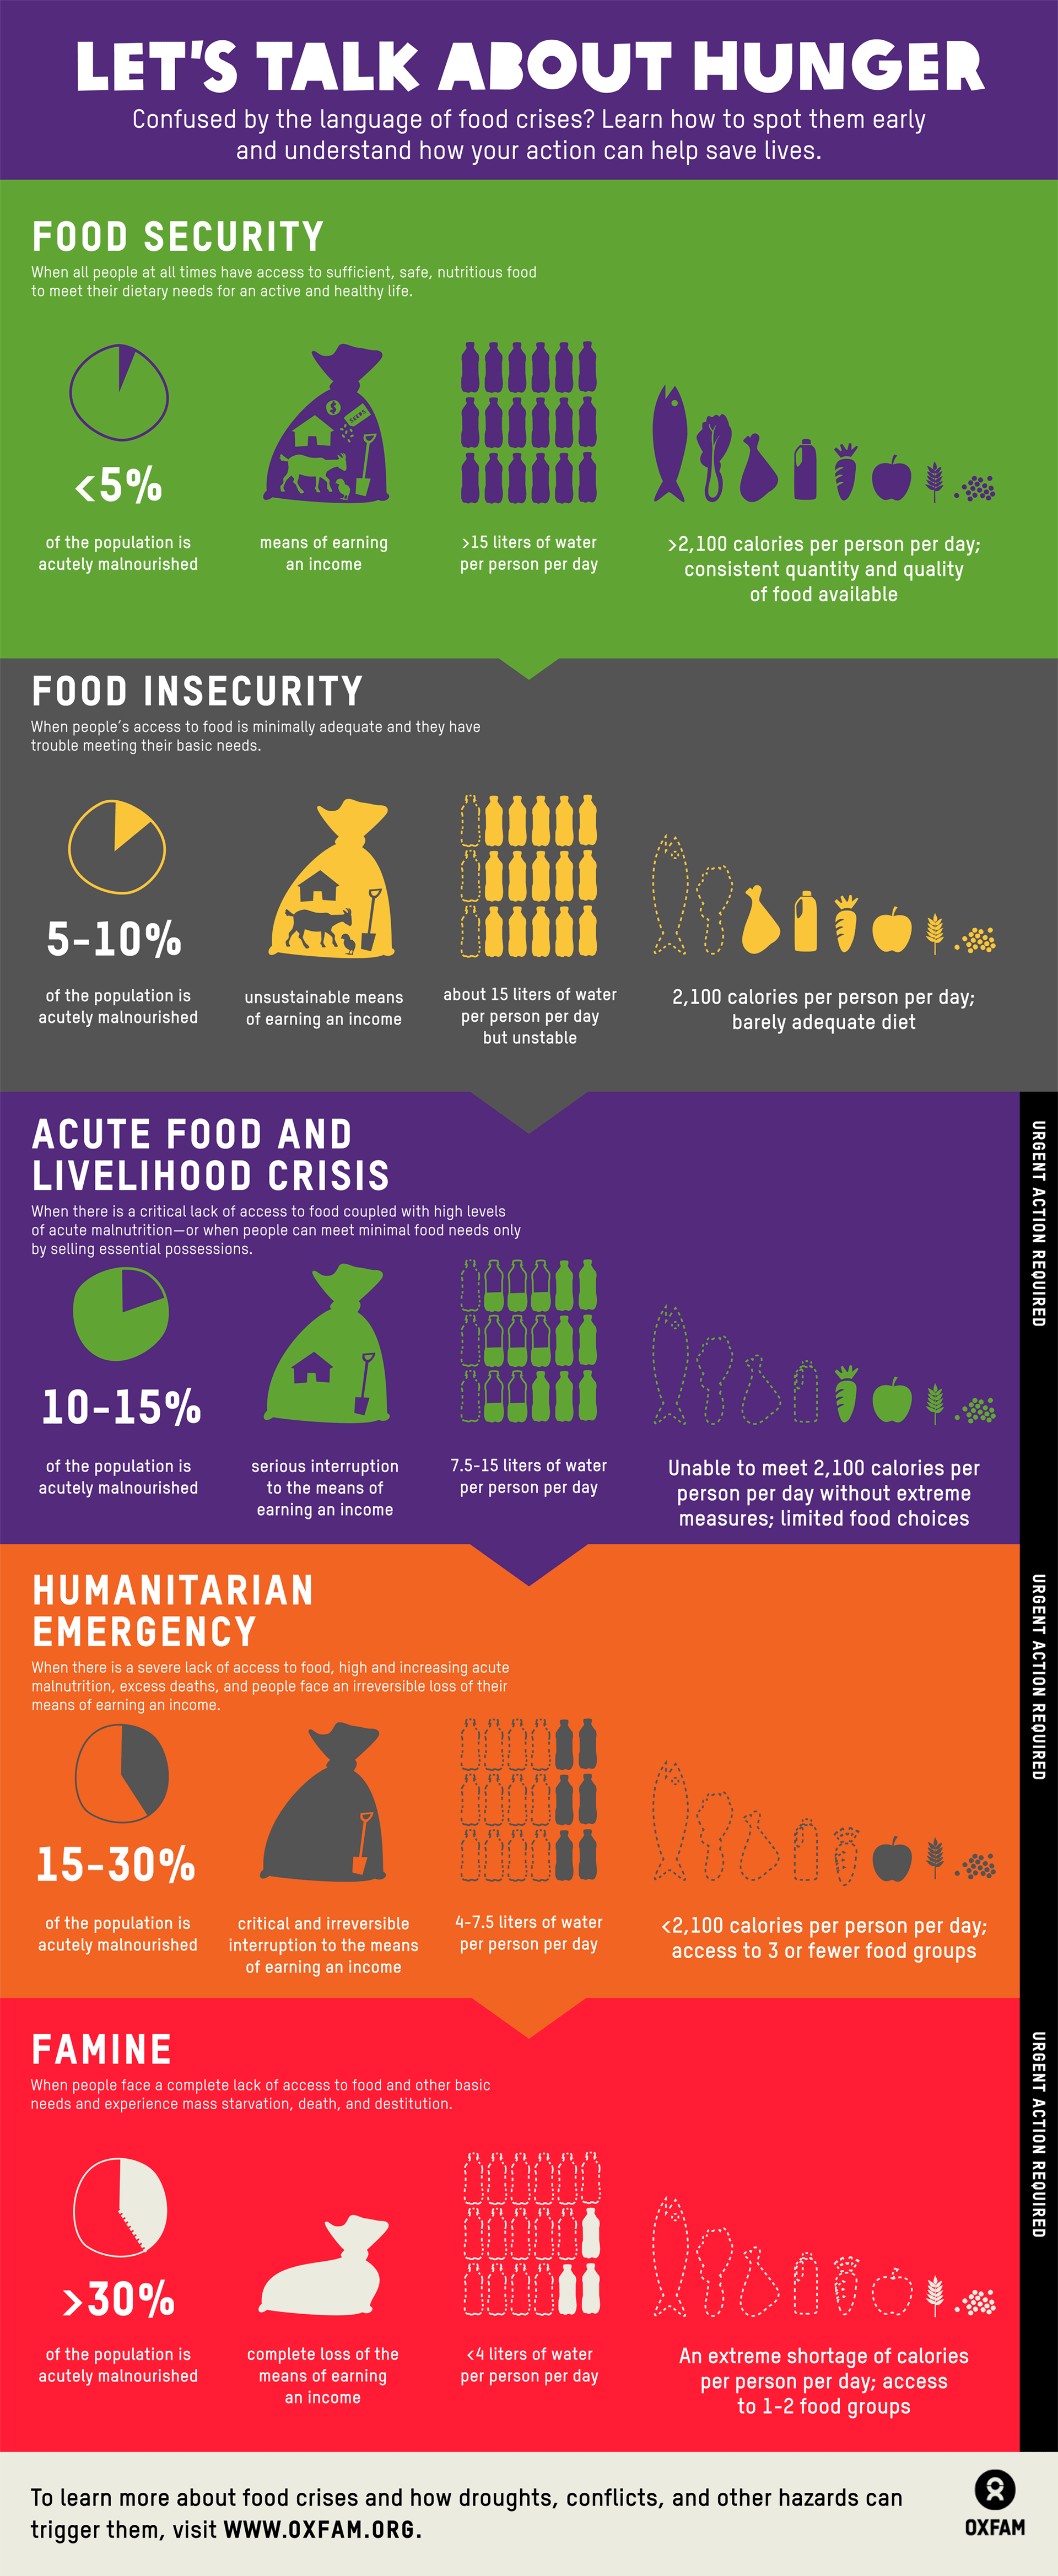 Ever Wonder What Word Like Food Insecurity Actually Mean Thi Infographic Can Help The Vocabulary Of Hunger C Security World Essay On